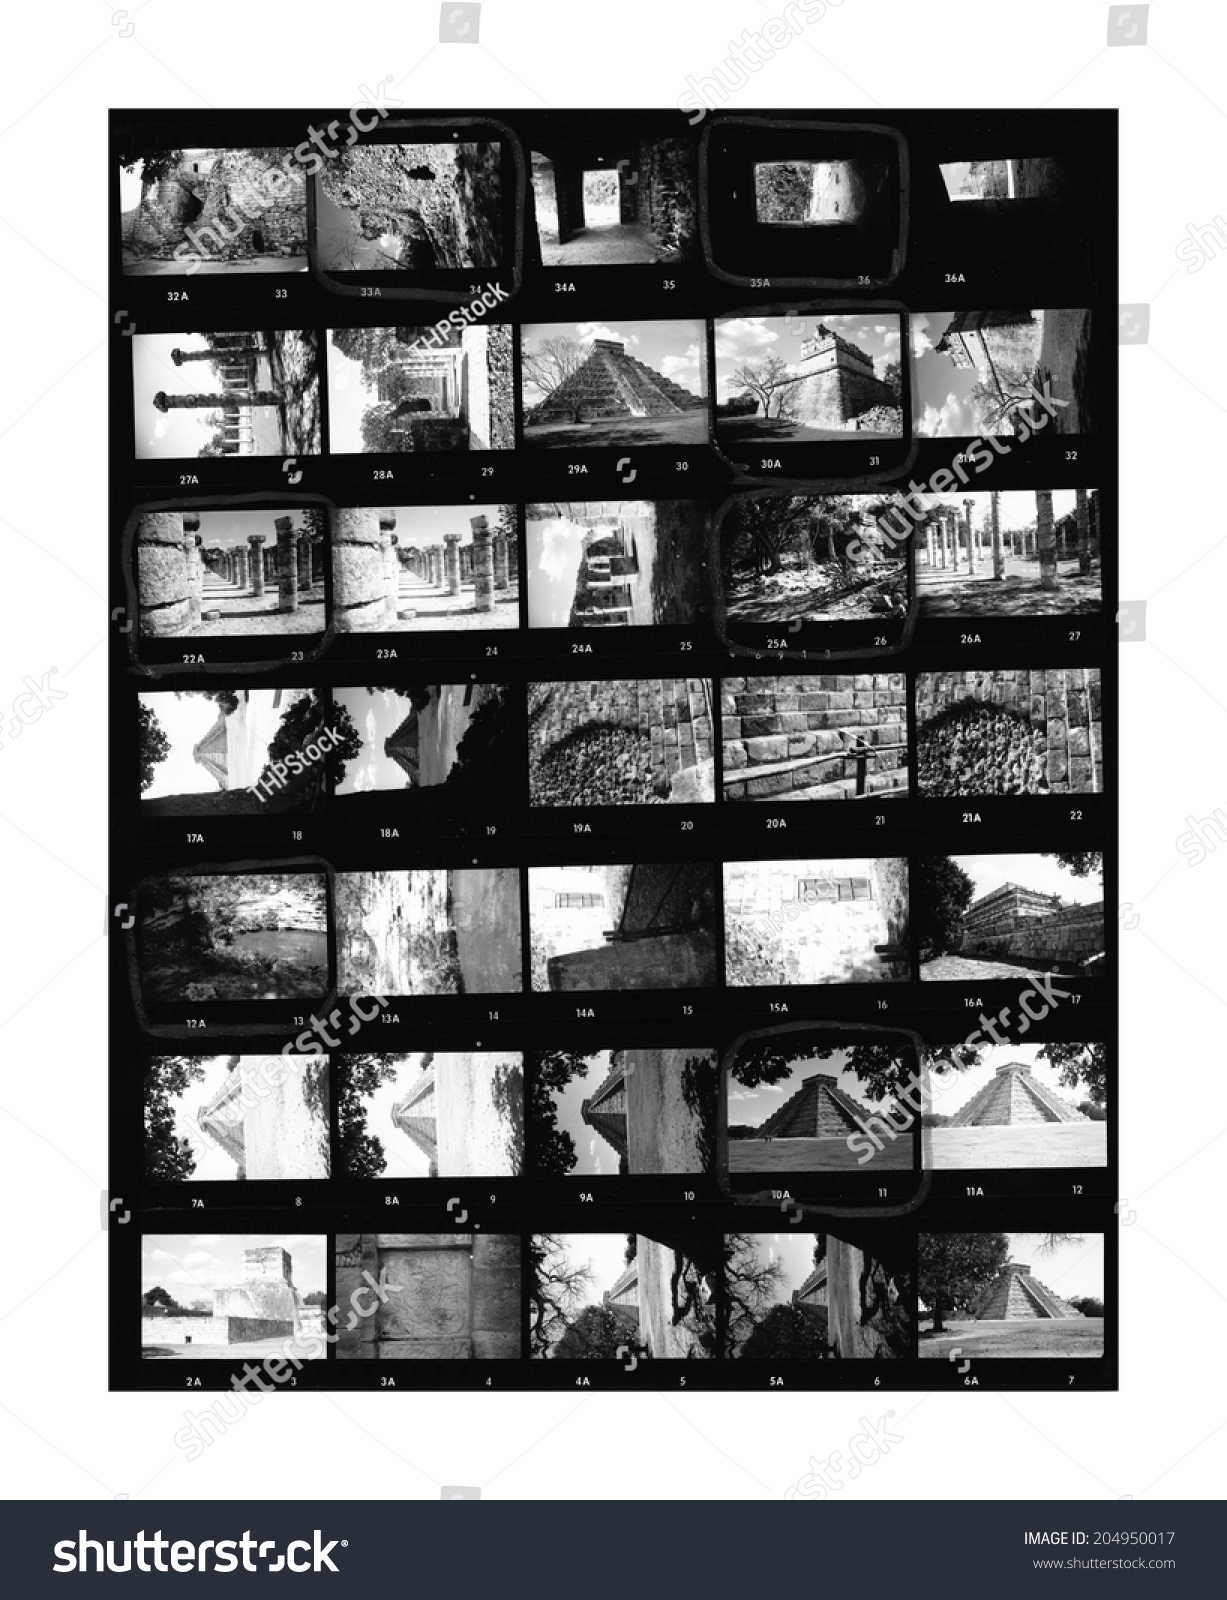 blacks and whites in movies essay Some modern film directors will occasionally shoot movies in black-and-white as an artistic choice, though it is much less common for a major hollywood production most computers had monochrome (black-and-white, black and green.